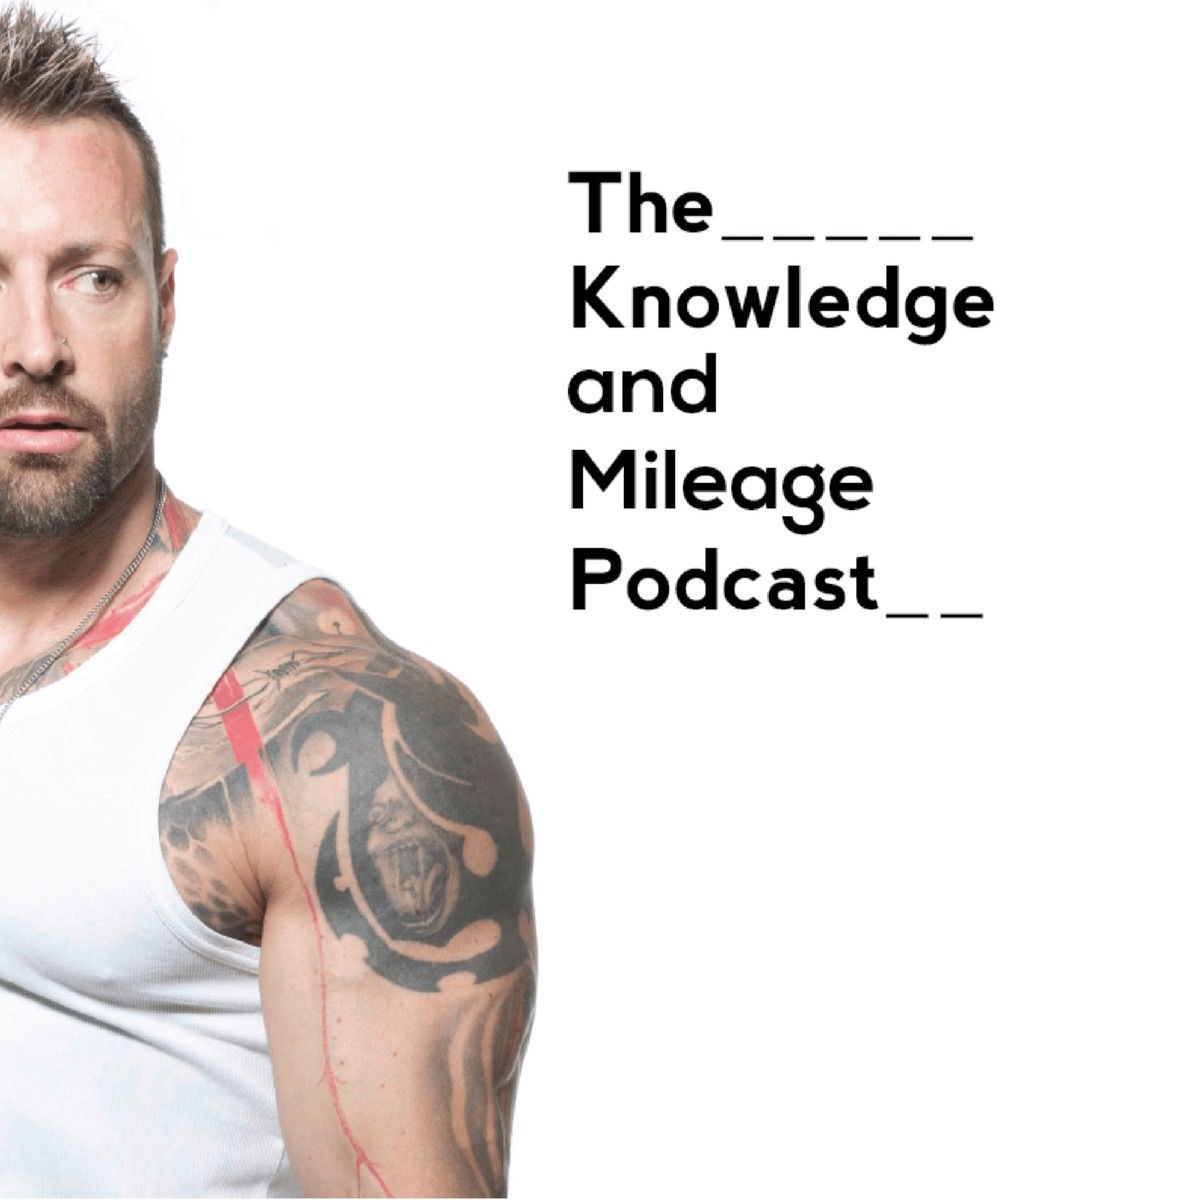 The Knowledge and Mileage Podcast